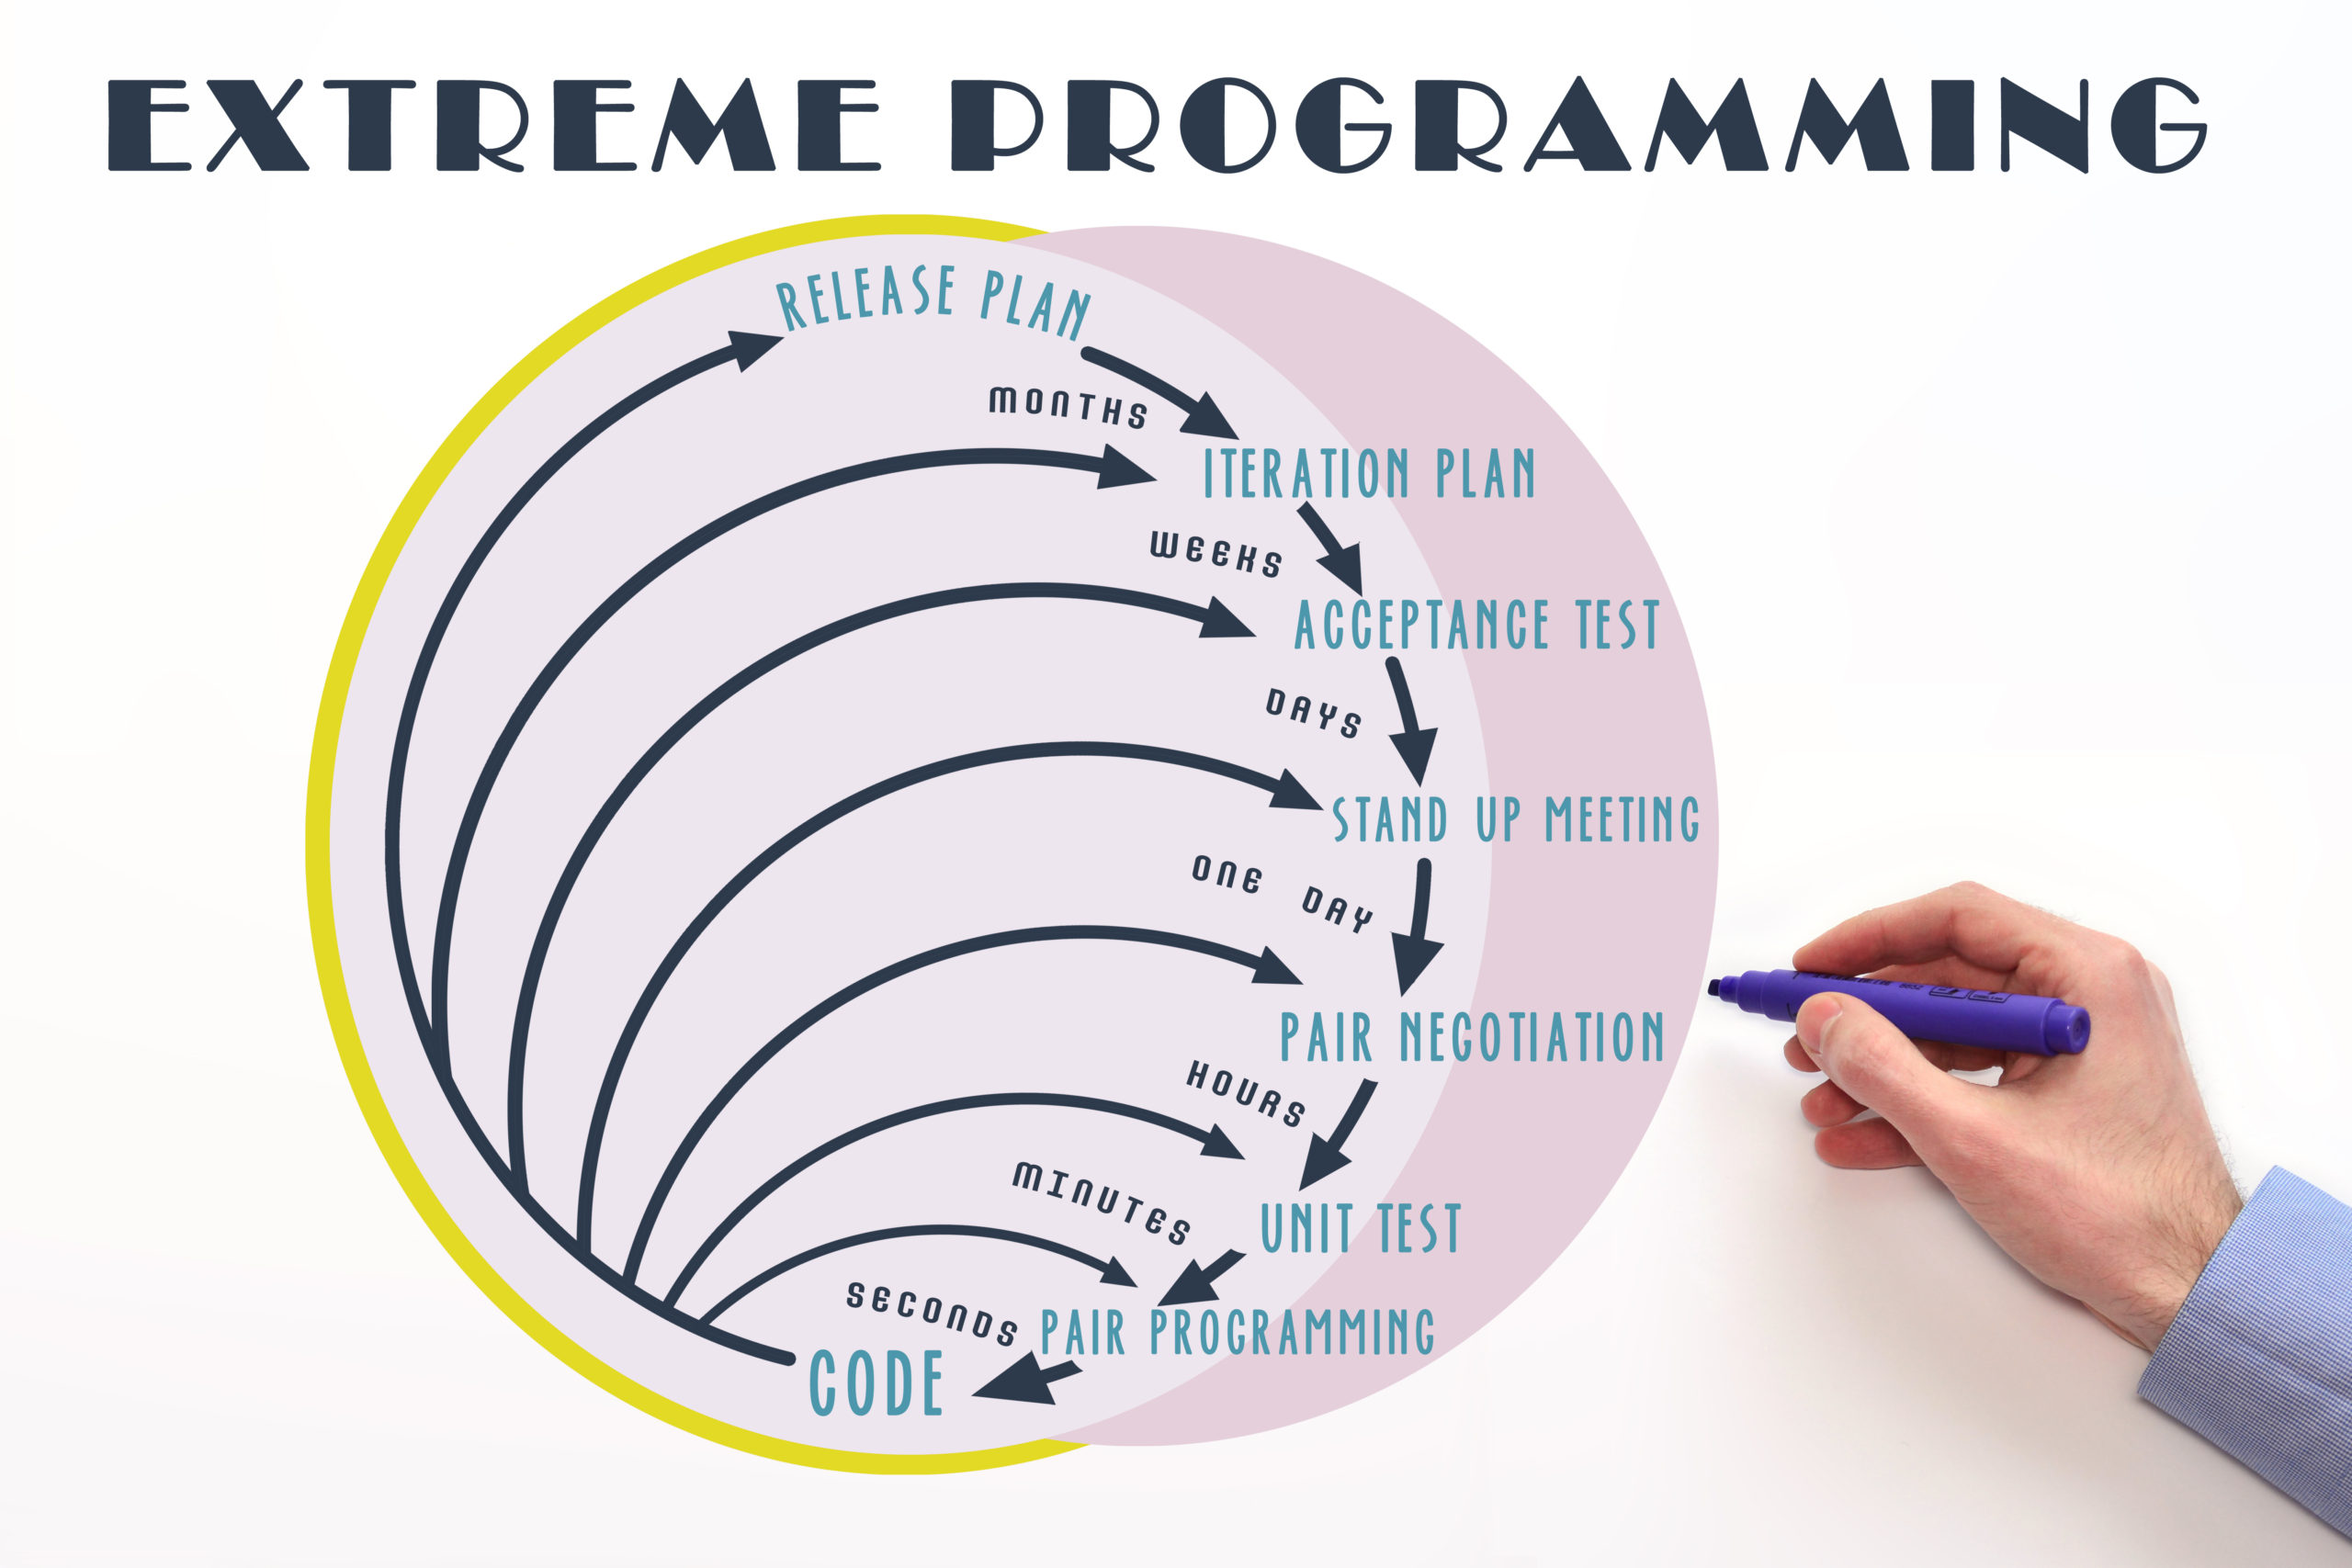 Extreme Programming in Agile